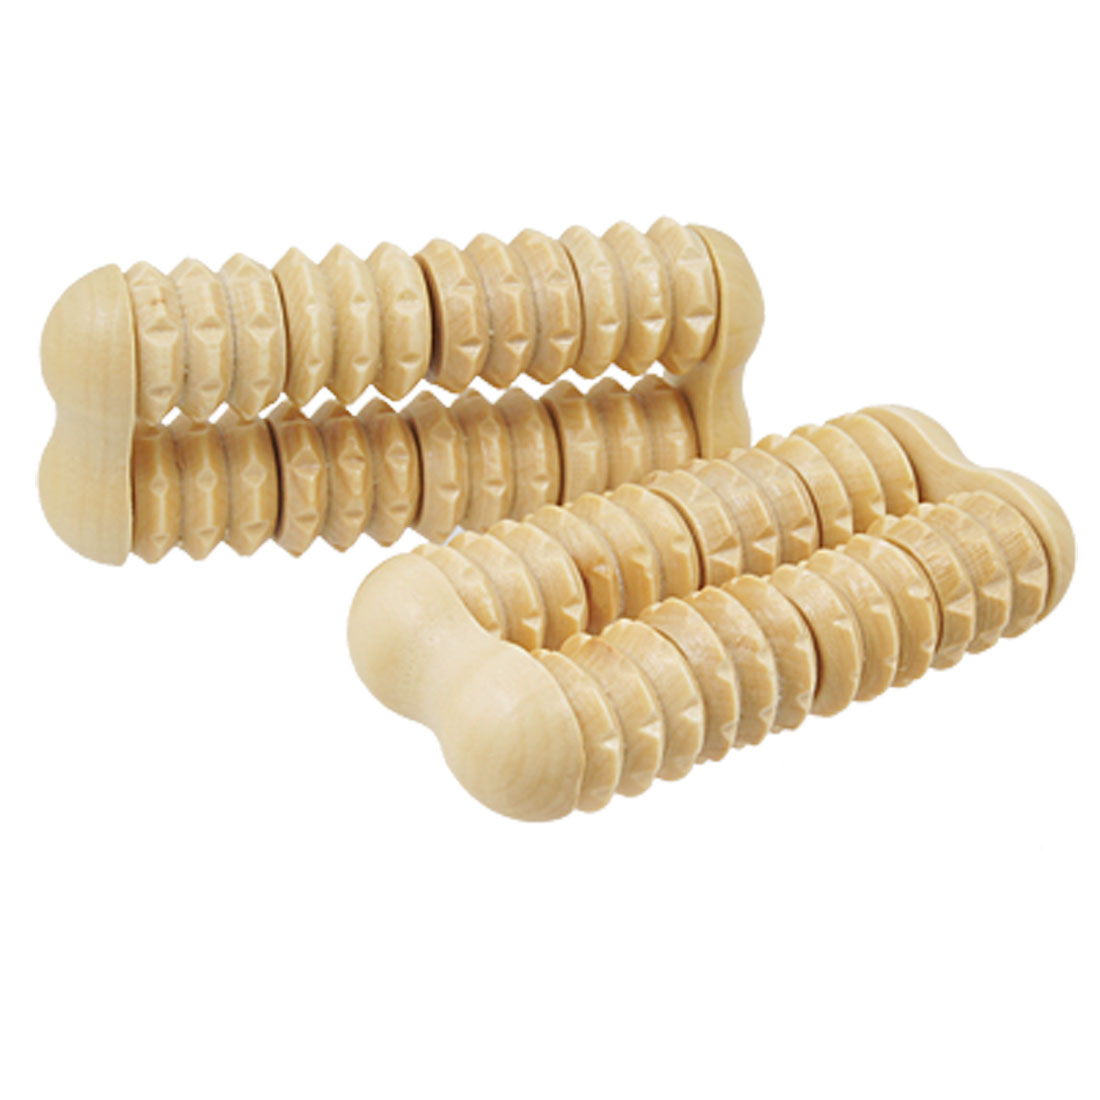 2 Pcs Mini Wooden 8 Wheels Massage Roller Body Arms Legs Massager